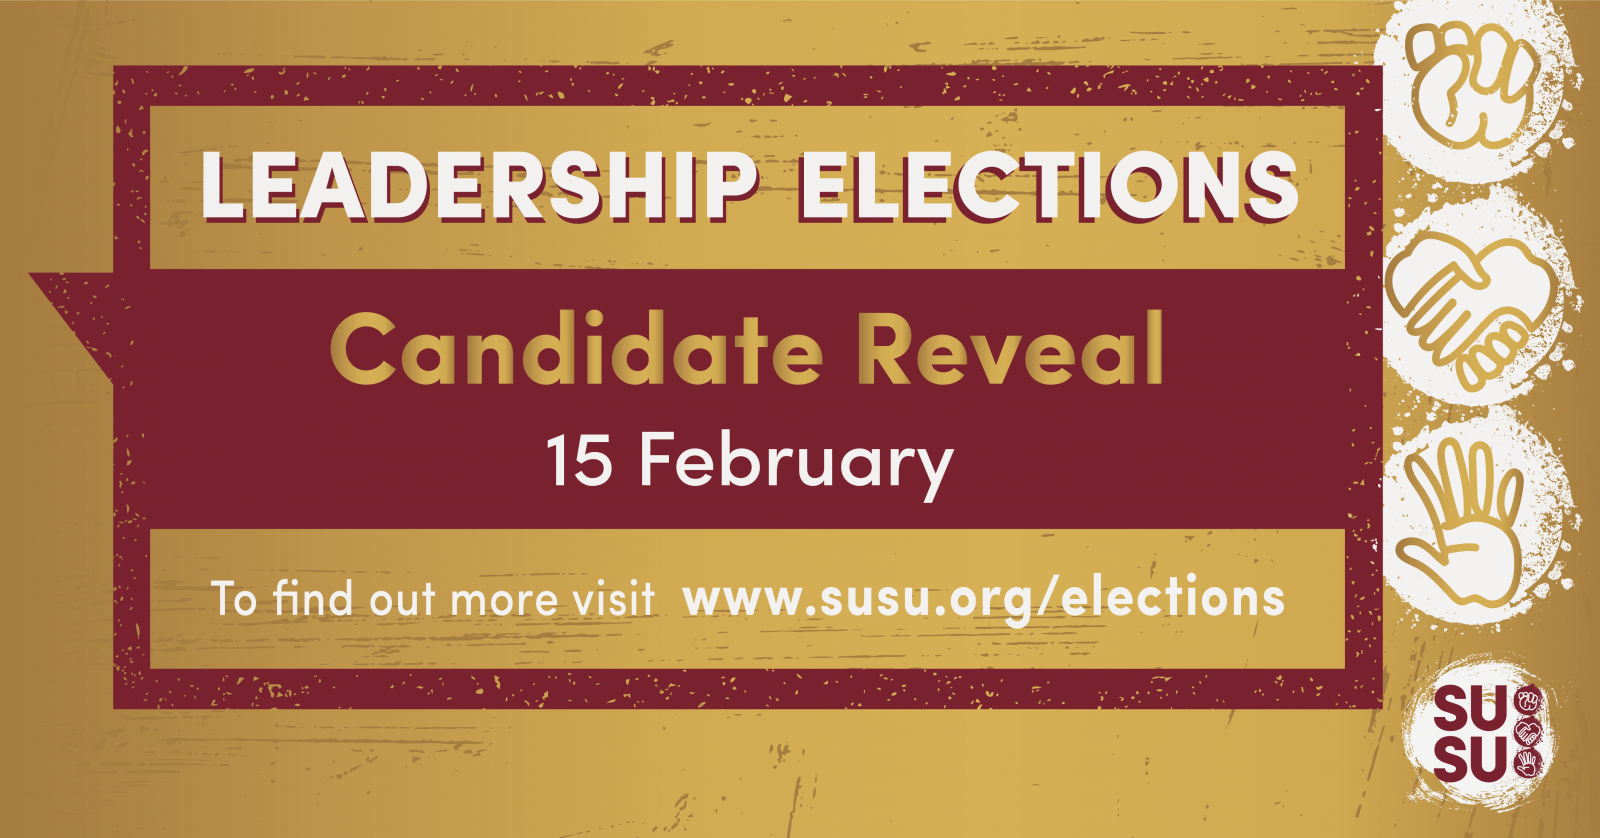 Leadership elections